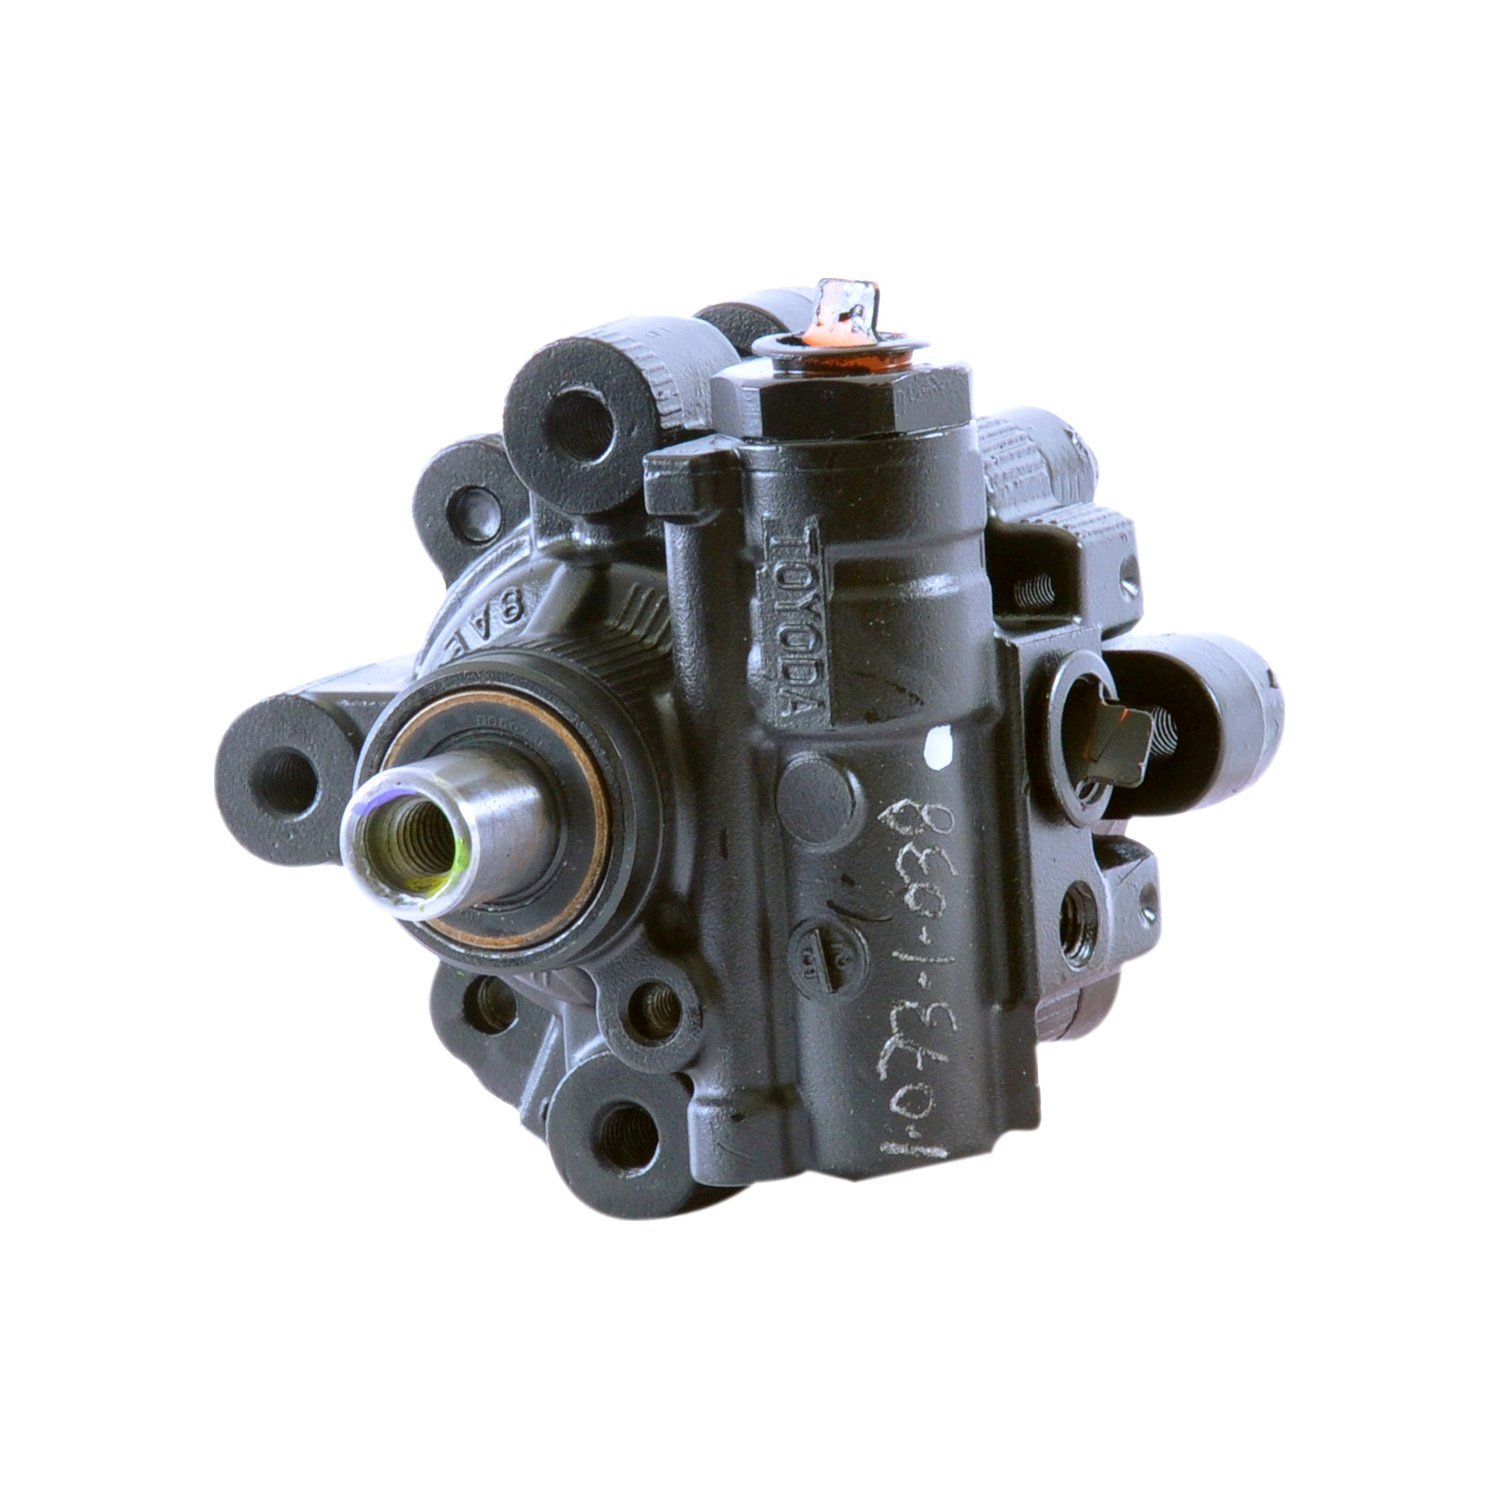 Acdelco 36p0377 Professional Power Steering Pump Additionally 2007 Grand Caravan Remanufactured Automotive